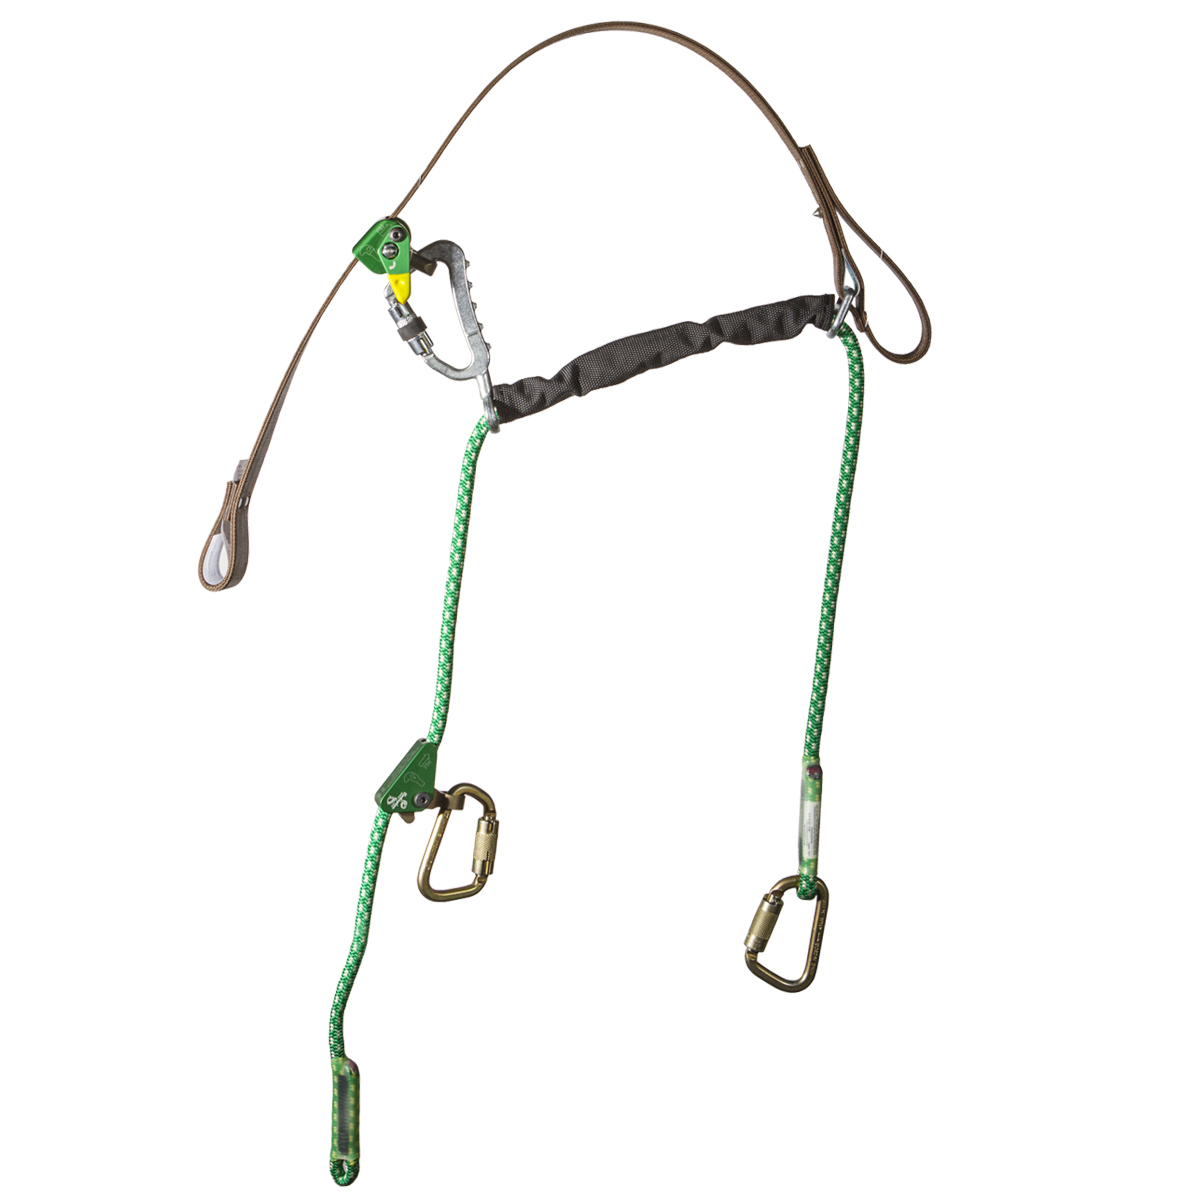 Buckingham's EZ Squeeze Fall Protection with Rope Inner